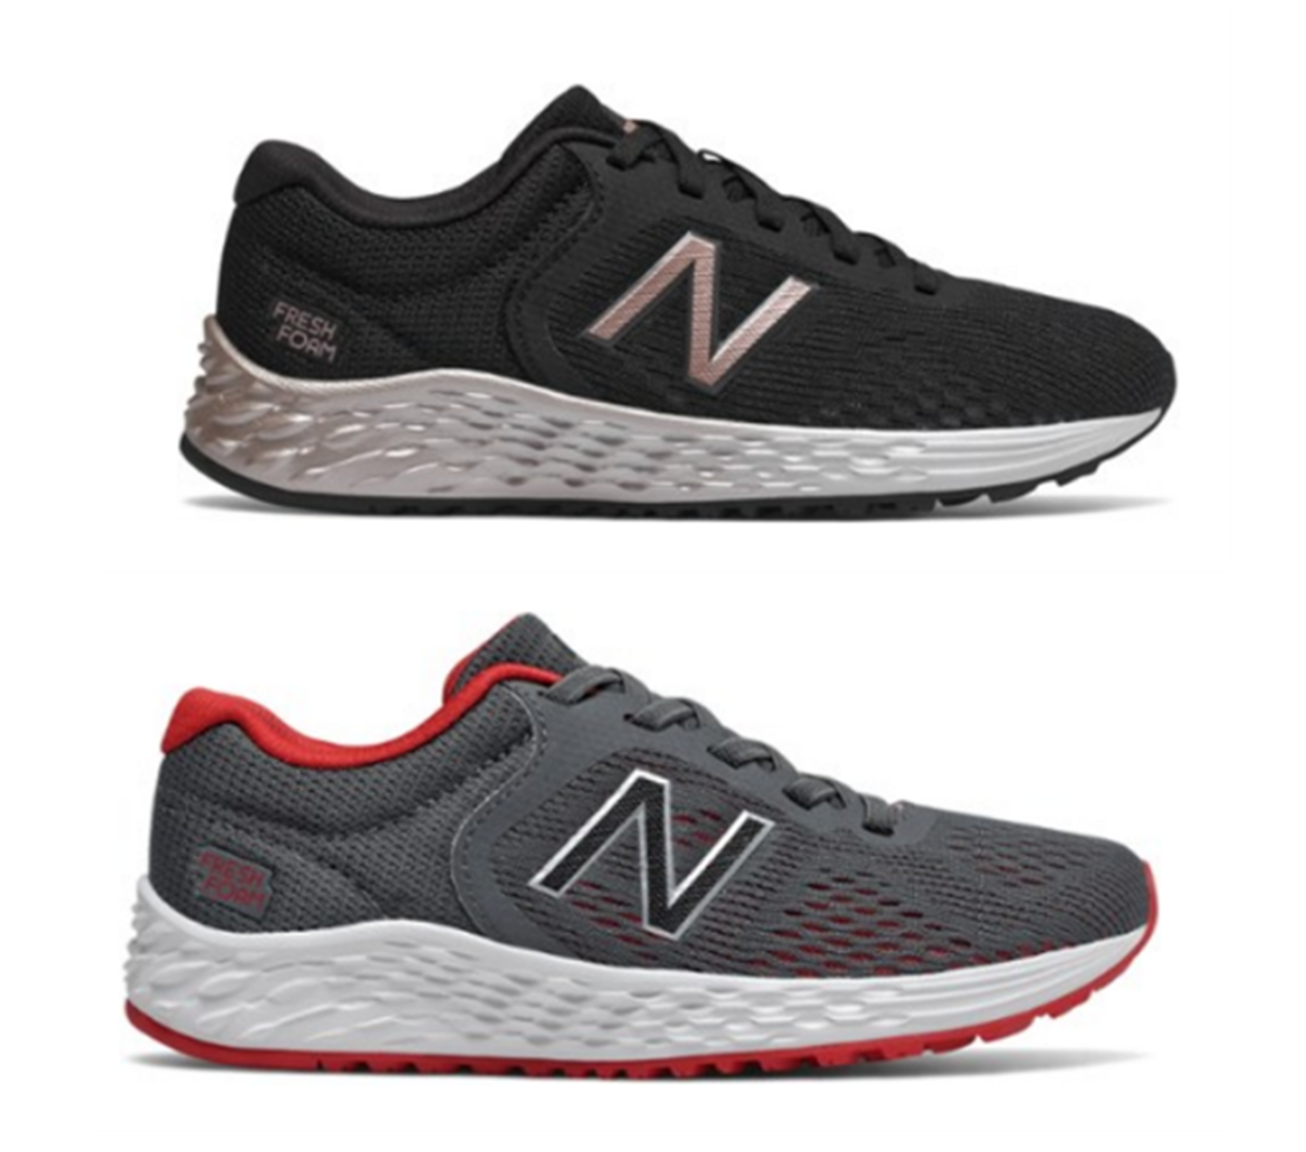 New Balance Running Shoes For Kids' Only $26.04, Reg $49.99 + Free Store Pickup!